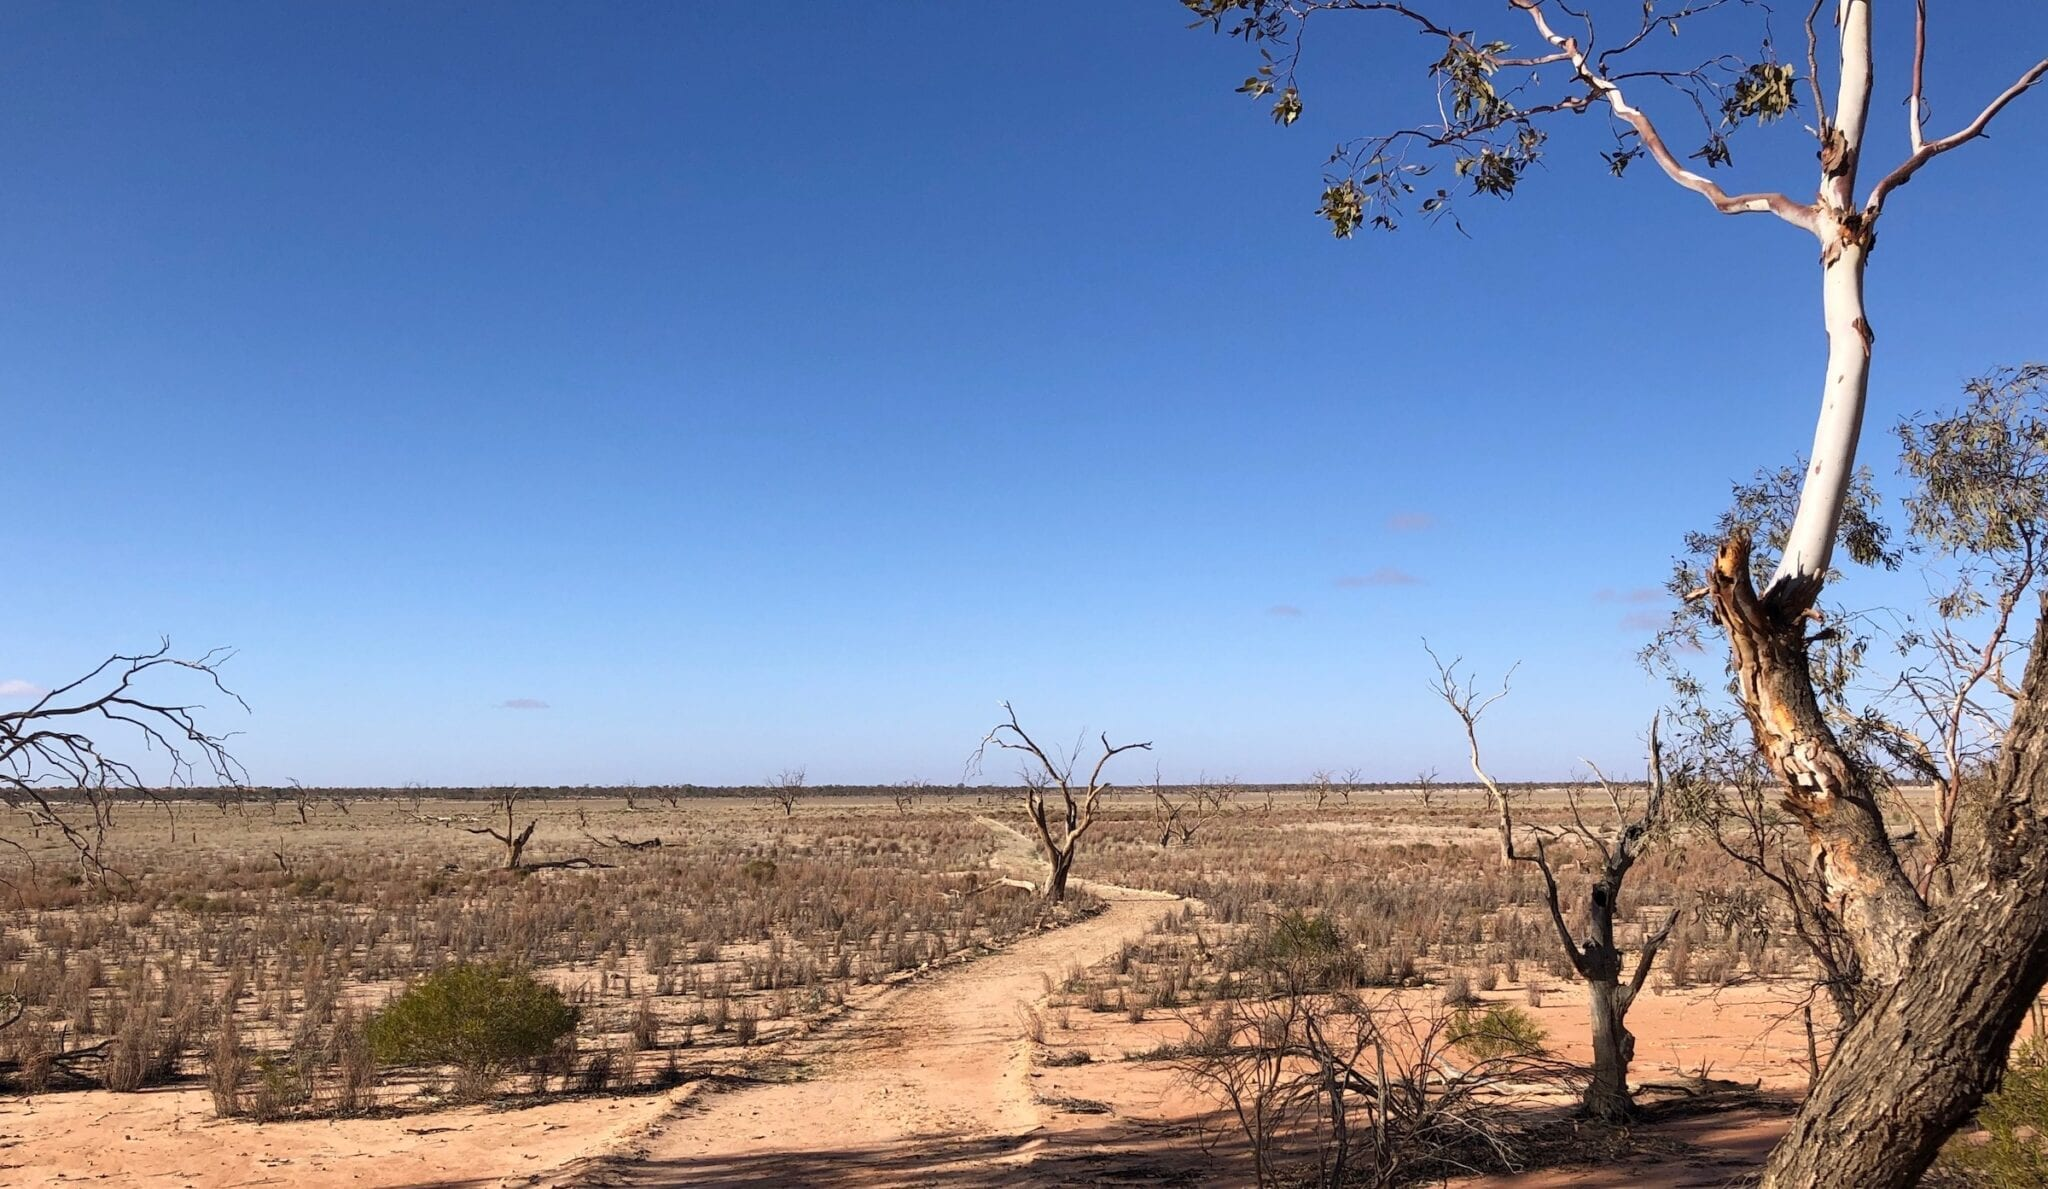 The beginning of the long walk across the lake bed. Lake Pinaroo, Sturt National Park NSW.